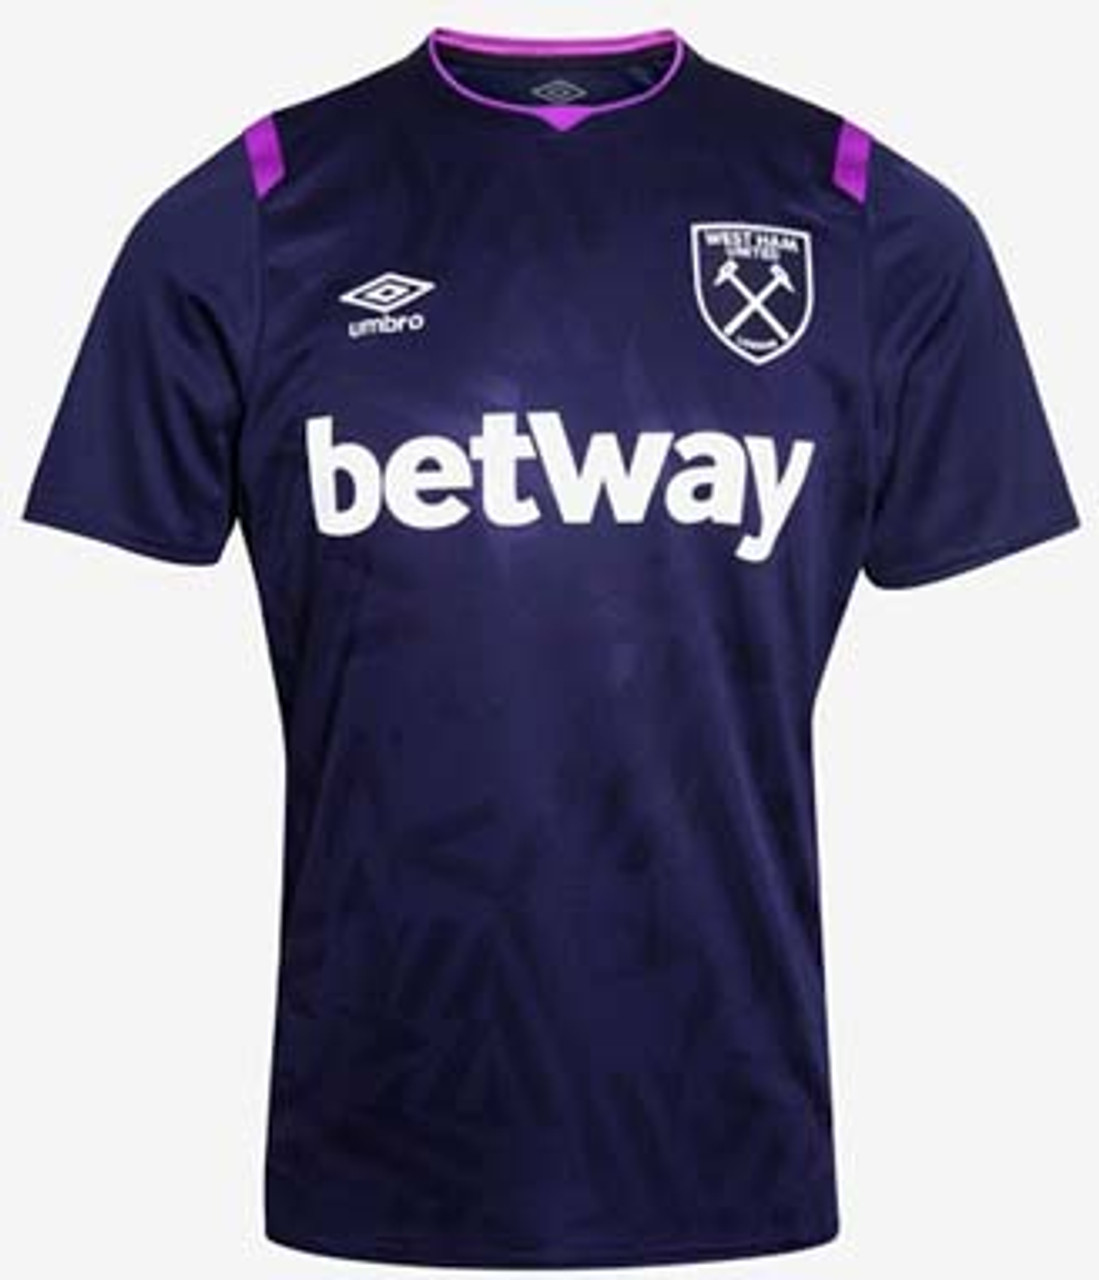 newest 8996a 602b7 UMBRO WEST HAM UNITED 2020 AWAY 3RD JERSEY PURPLE